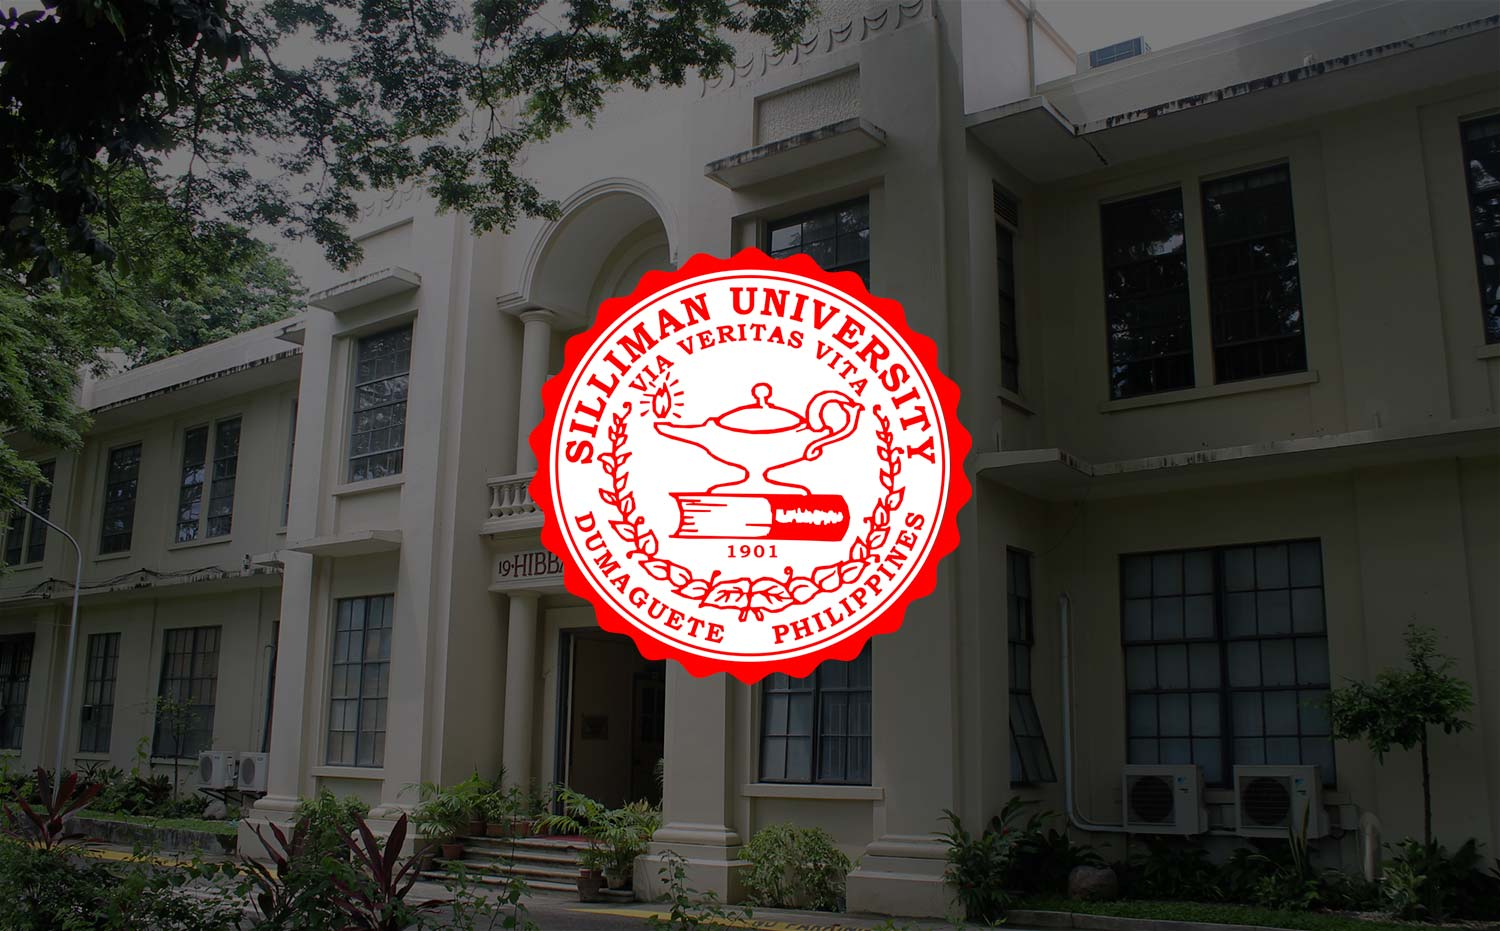 A Three-Part Graduation Exercise for Silliman University